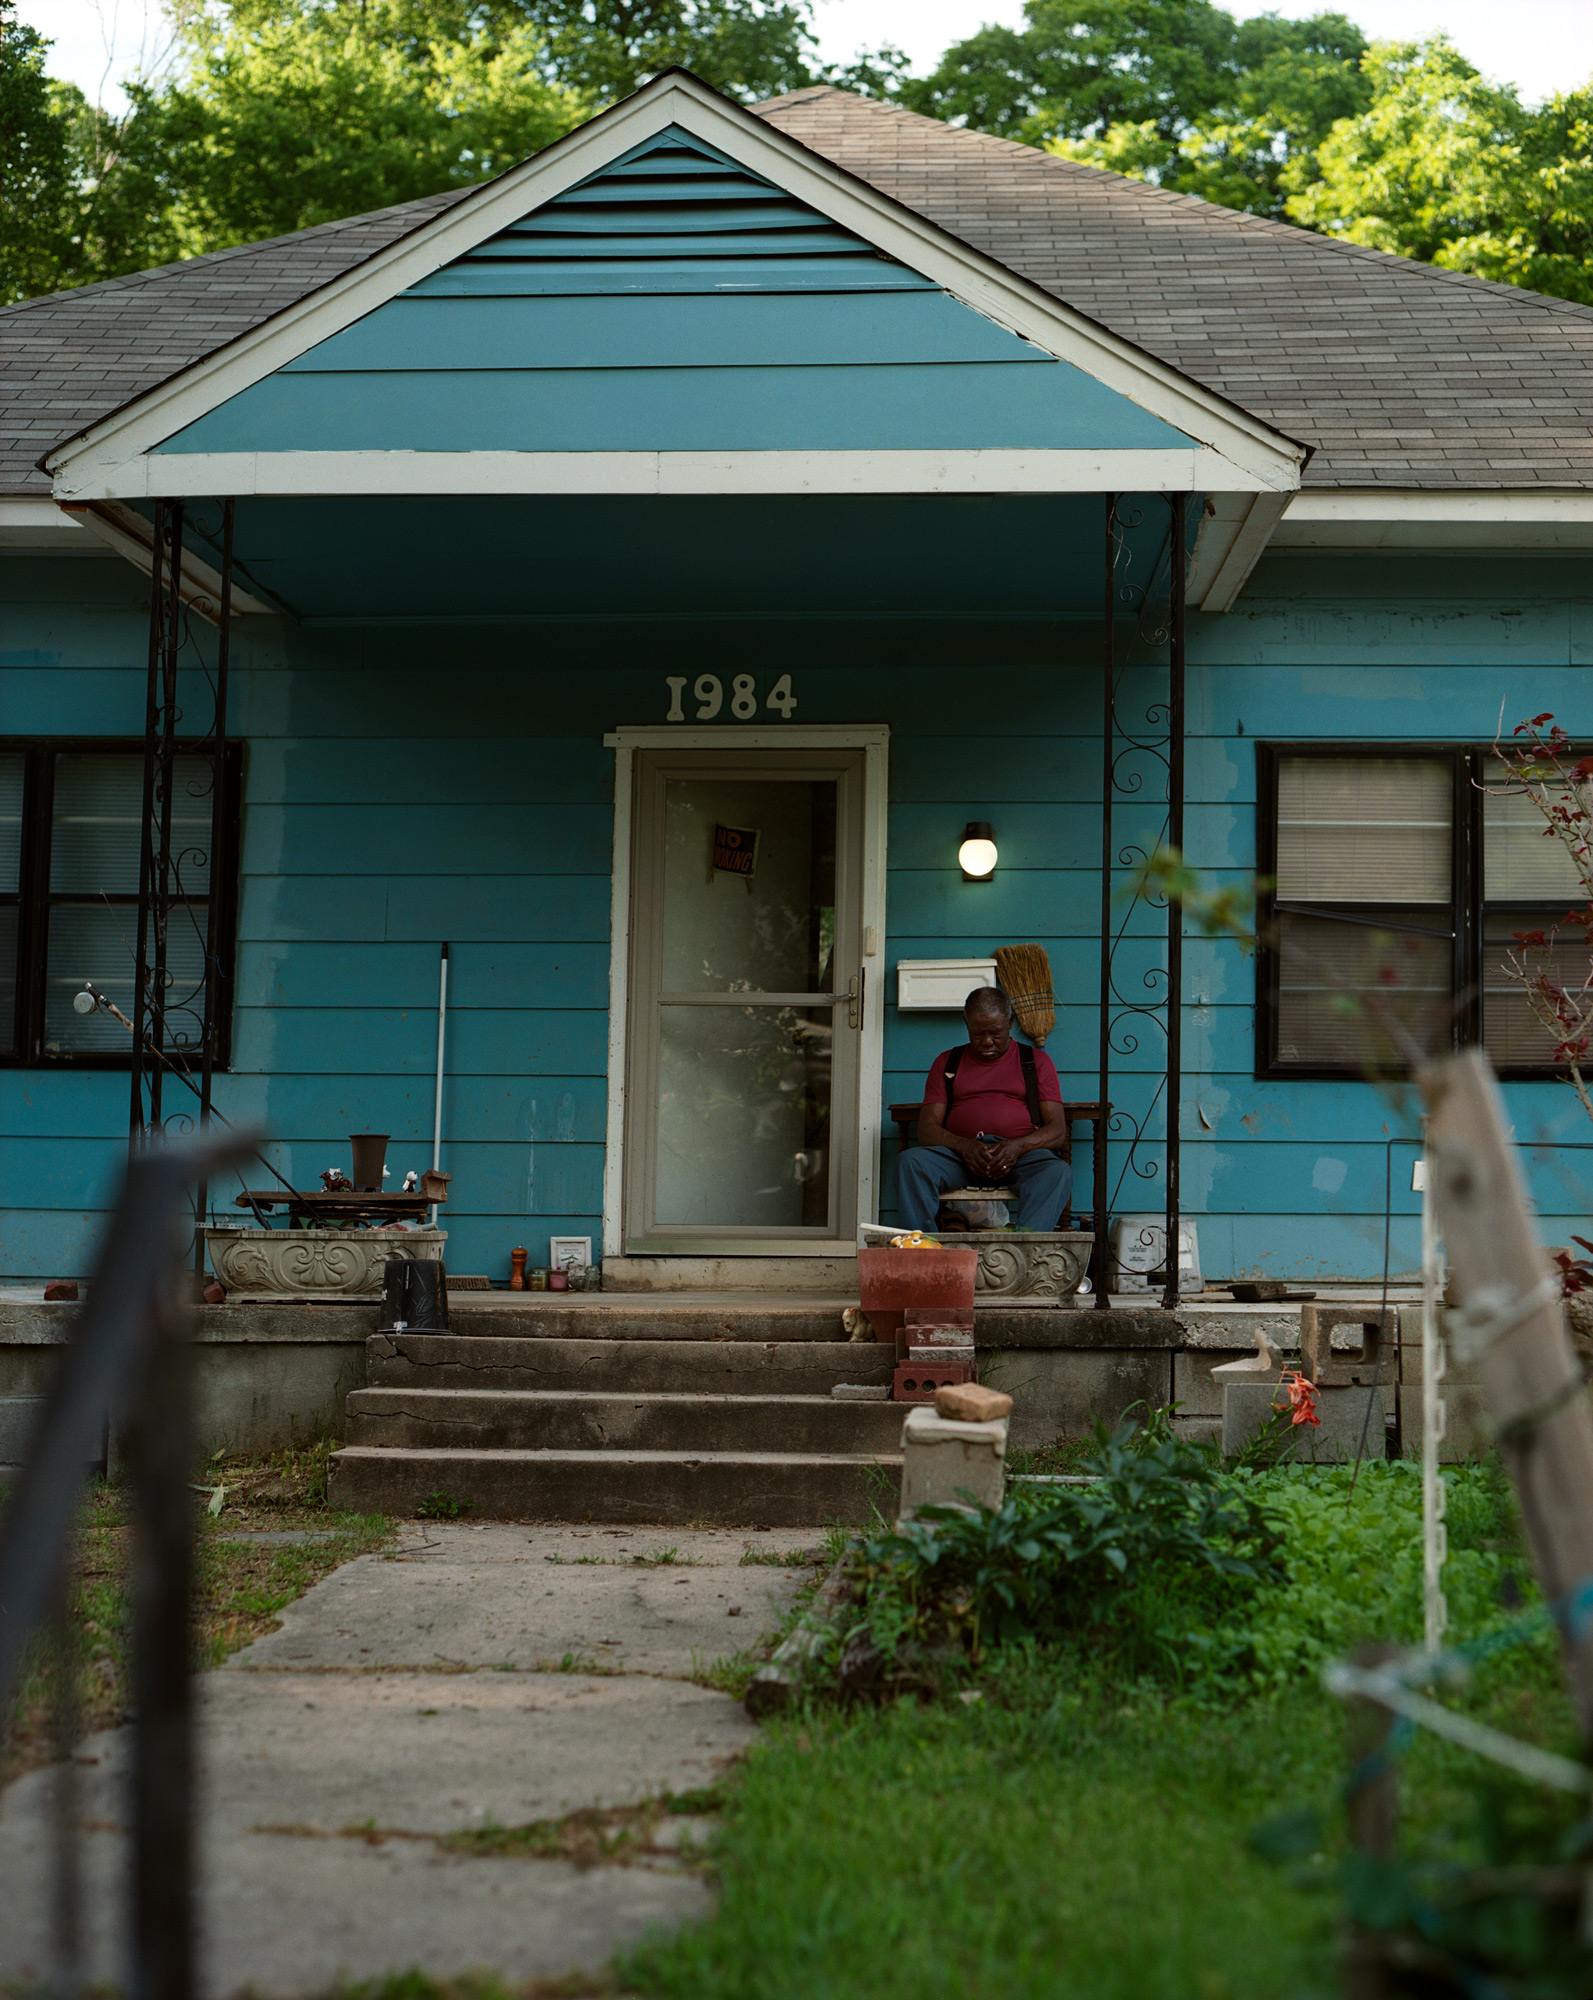 Man asleep on his front porch. New Orleans, Omg Your English, Photography By Ioannis Koussertari